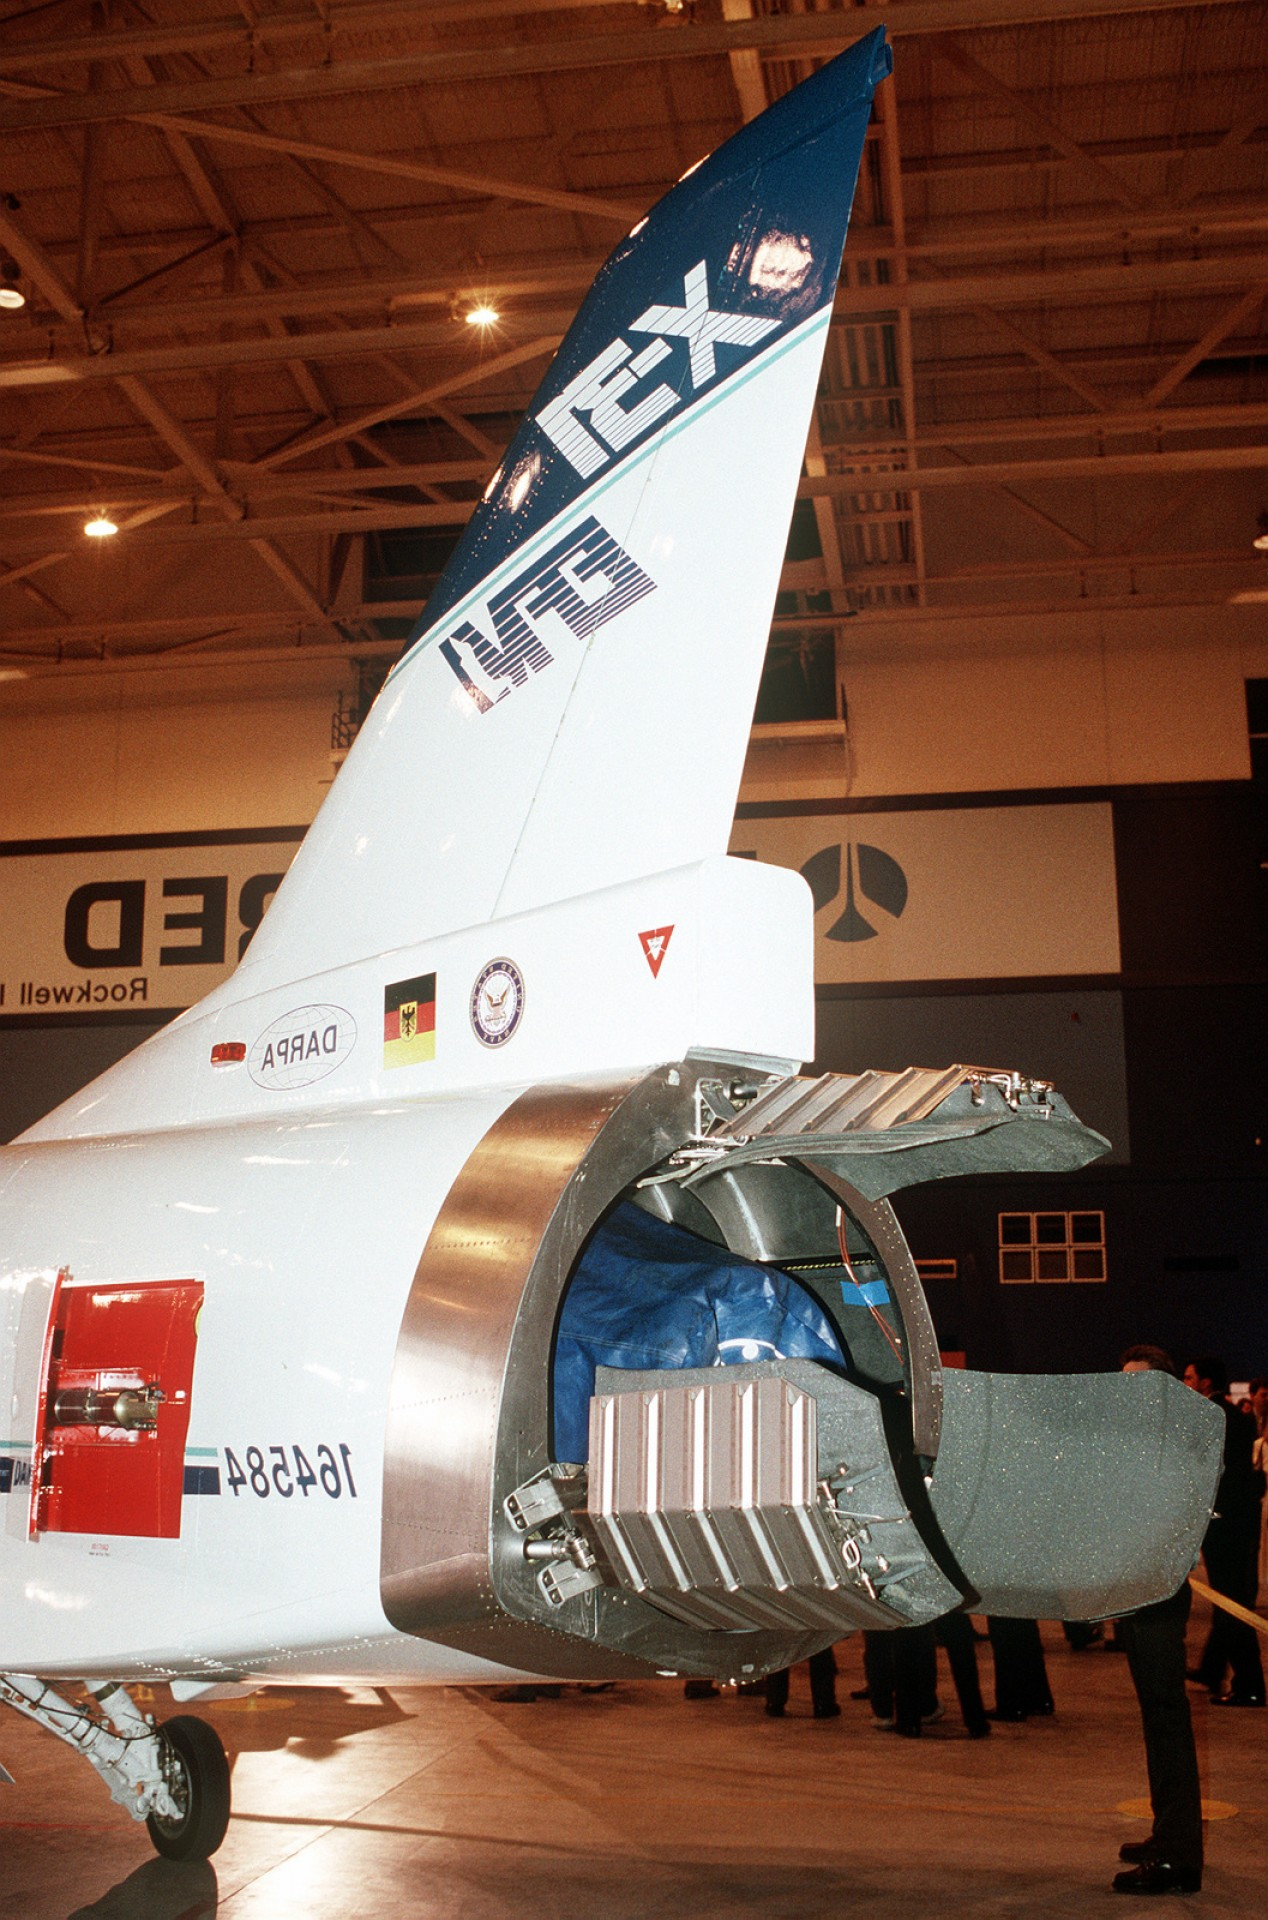 Jet Boat Thrust Vector: A Close Up View Of The Thrust Vector Control Systems Of The X Enhanced Fighter F